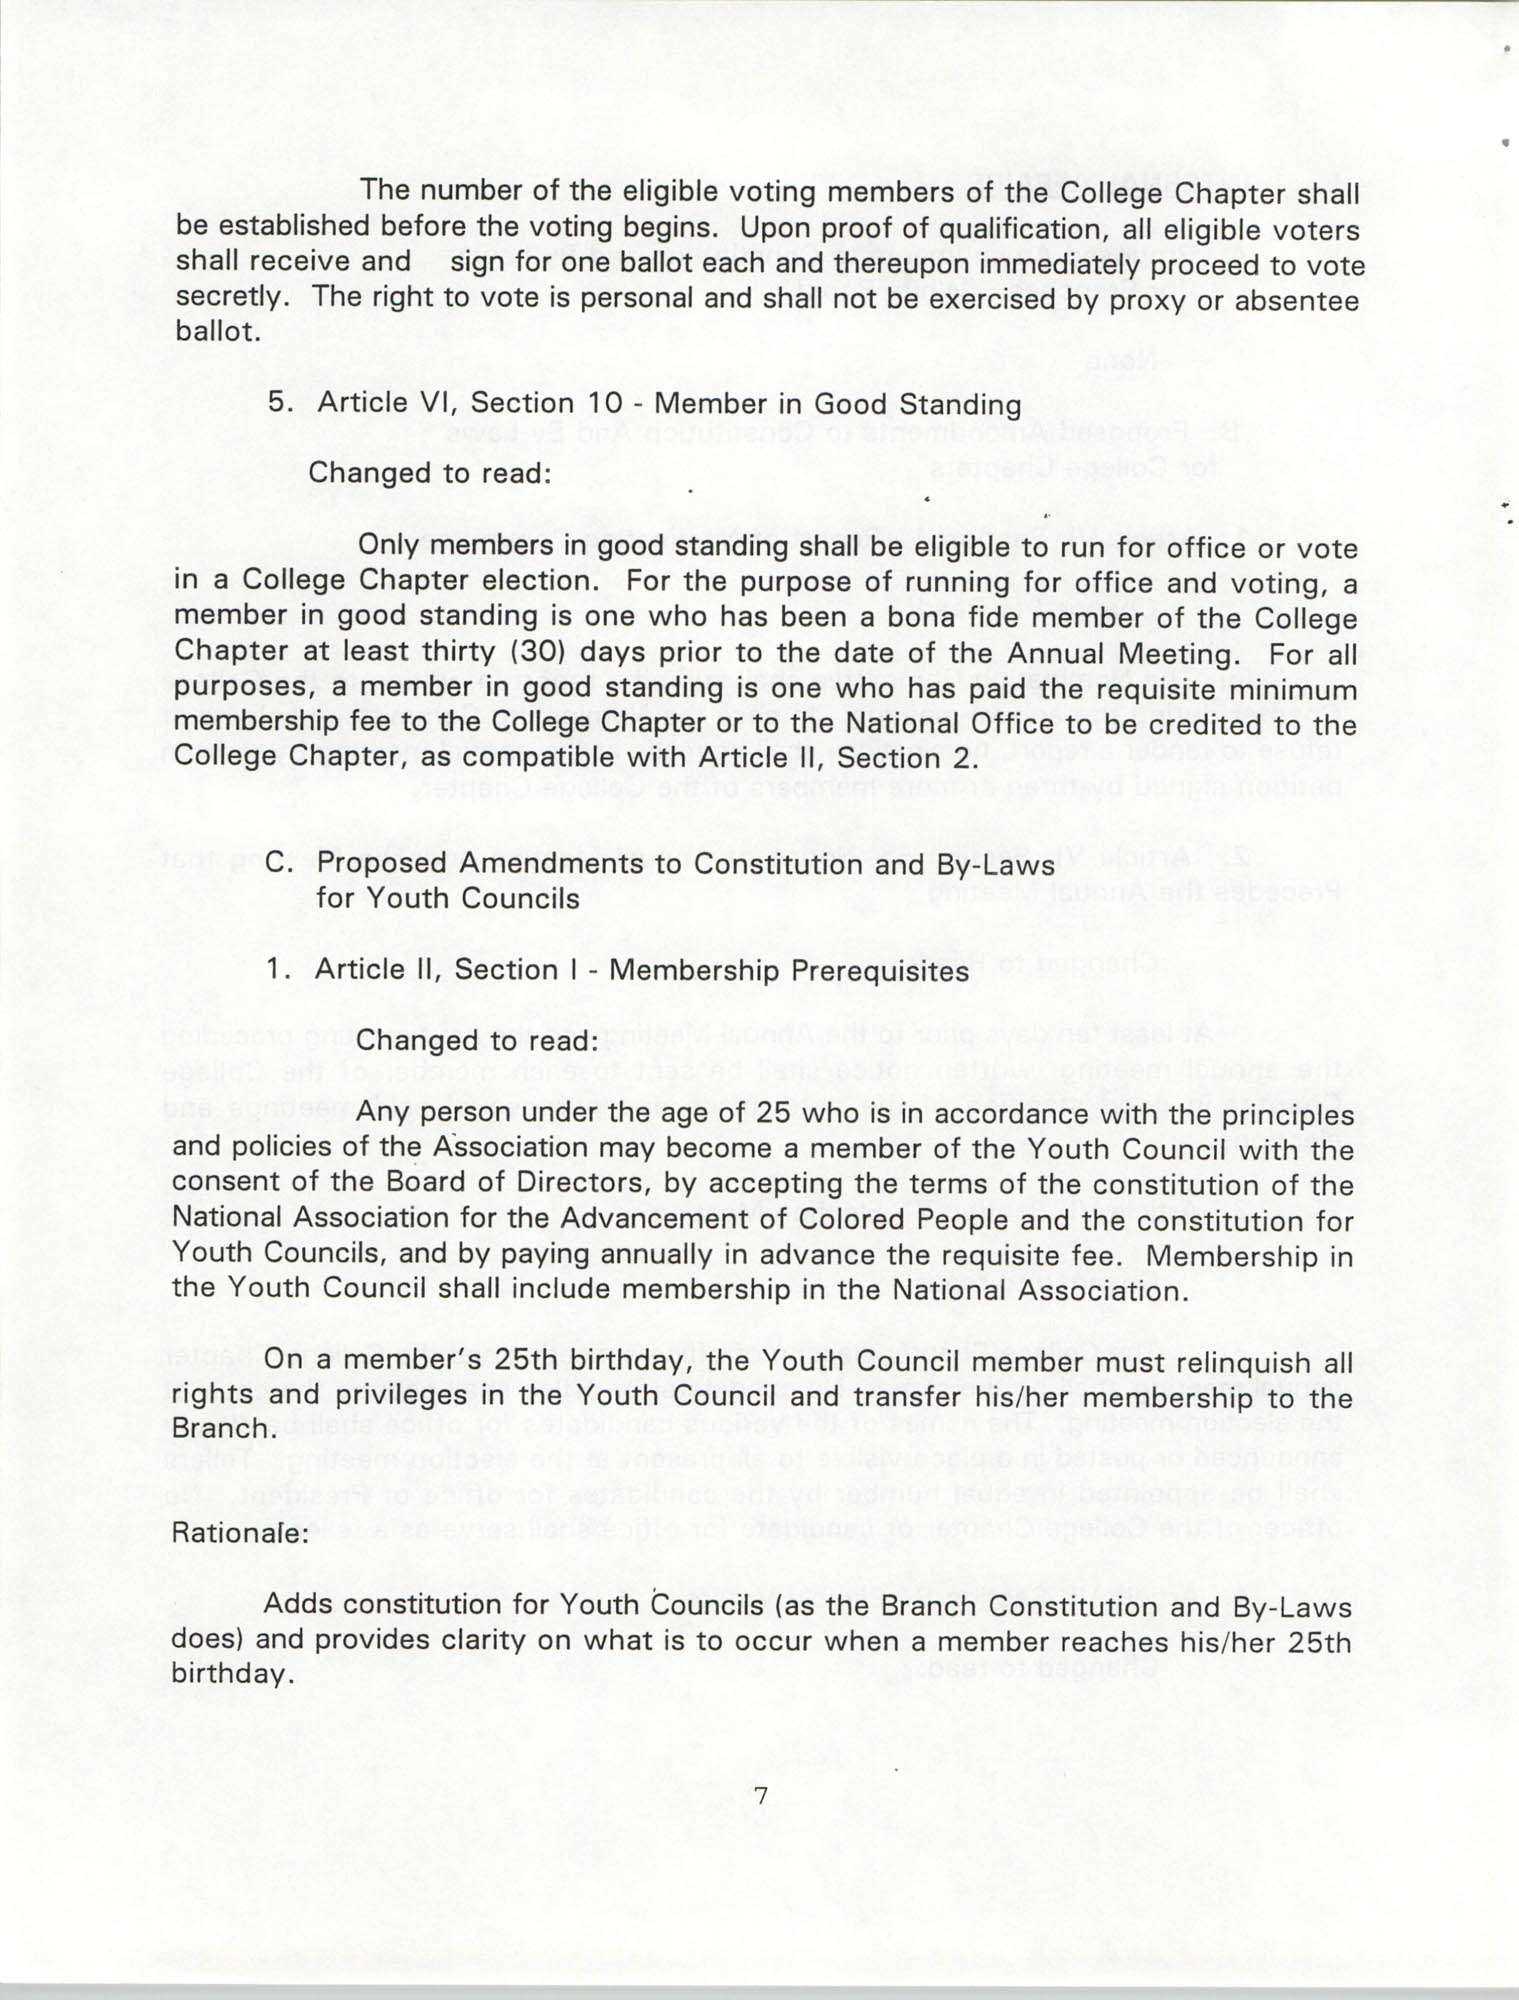 Resolutions Submitted Under Article X, Section 2 of the Constitution of the NAACP, 1994, Page 7